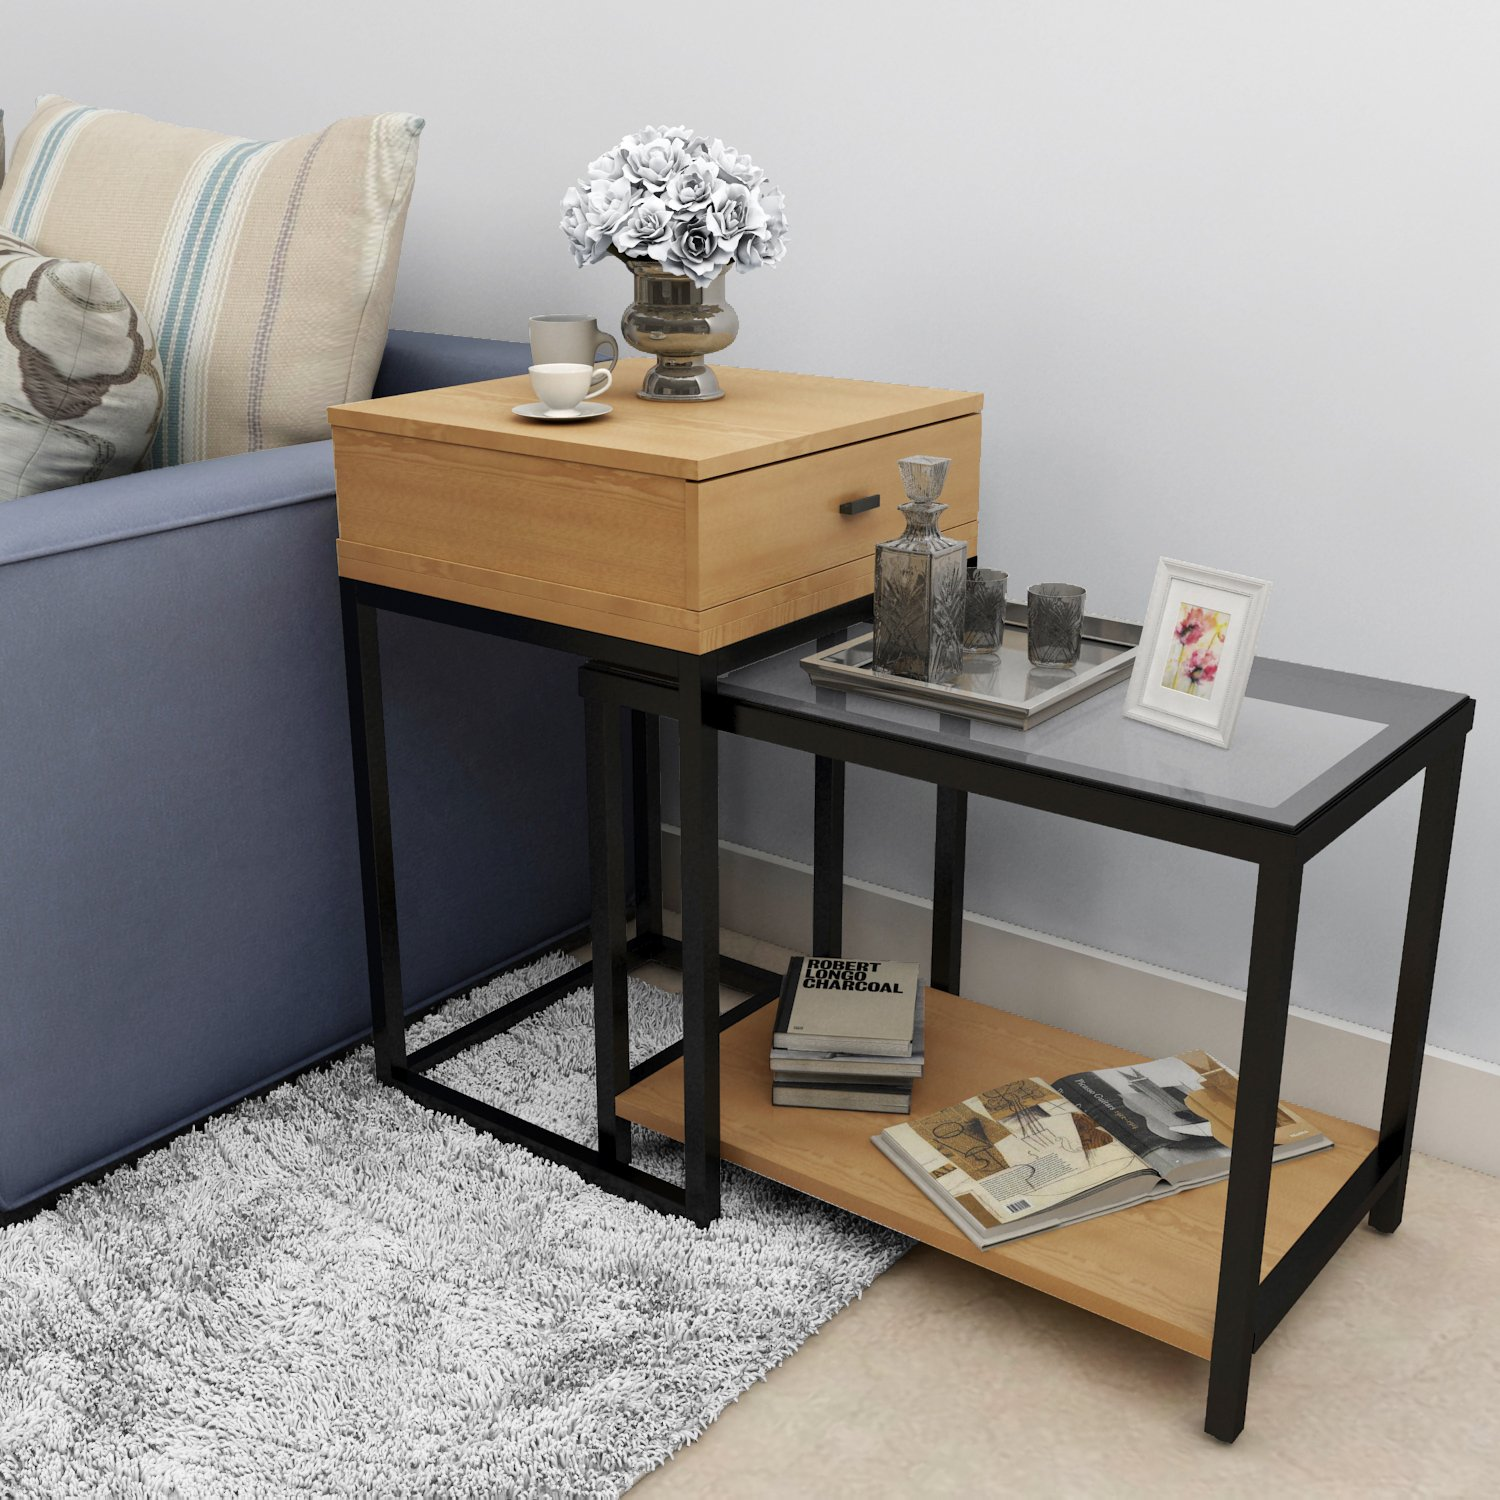 Lifewit 2 piece end table nesting sofa side table set coffee lifewit 2 piece end table nesting sofa side table set coffee accent table with drawer watchthetrailerfo